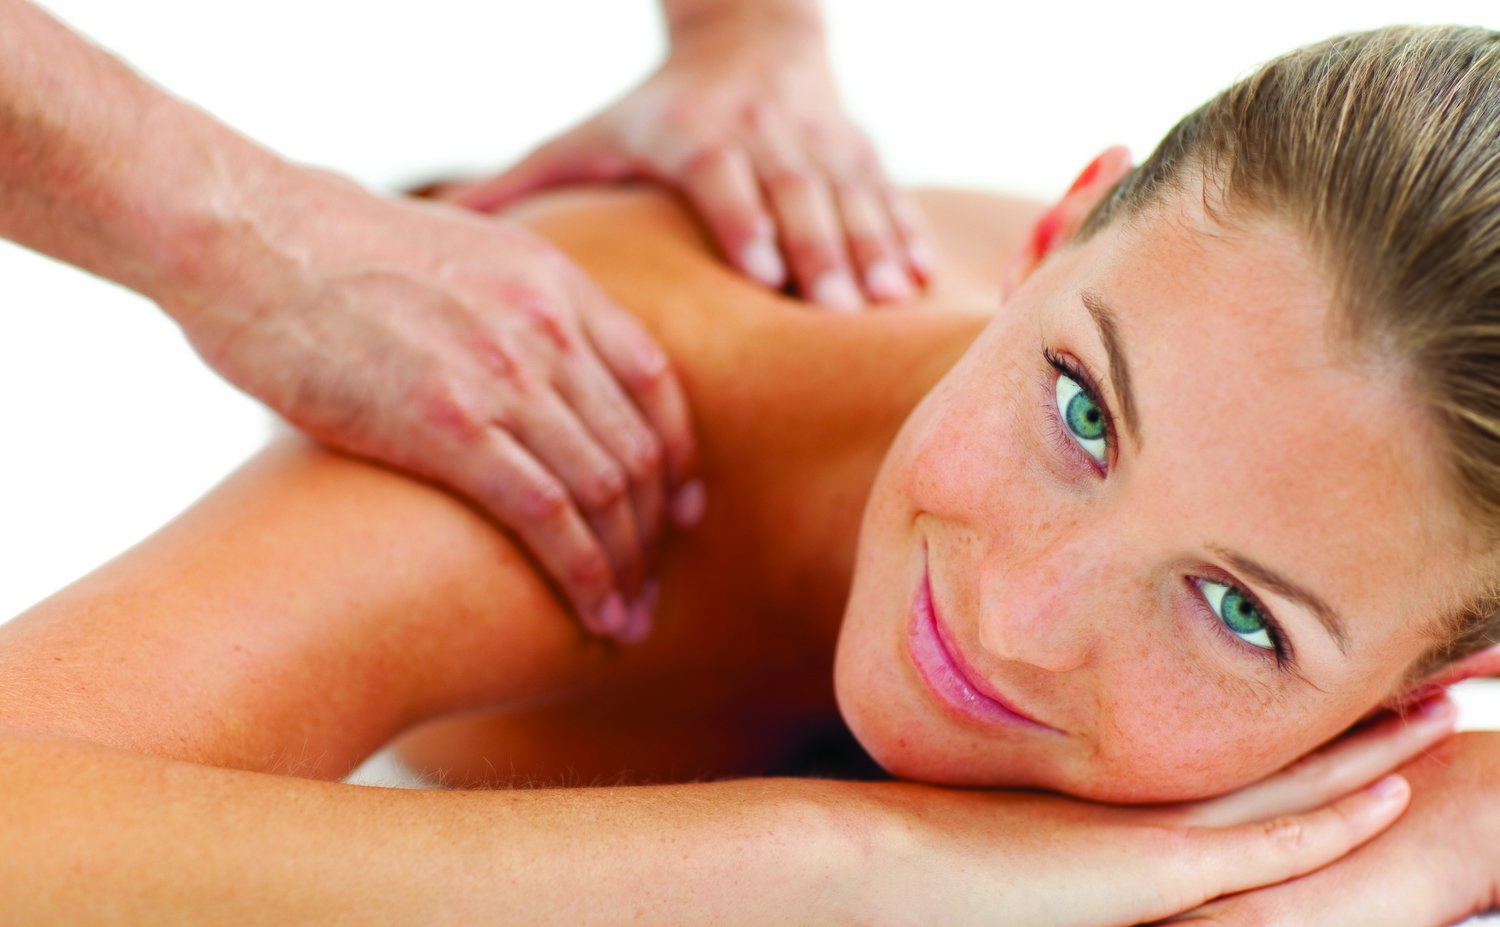 12 30-Minute Relax and Rejuvenate Massage Therapy Sessions (Save 15%)